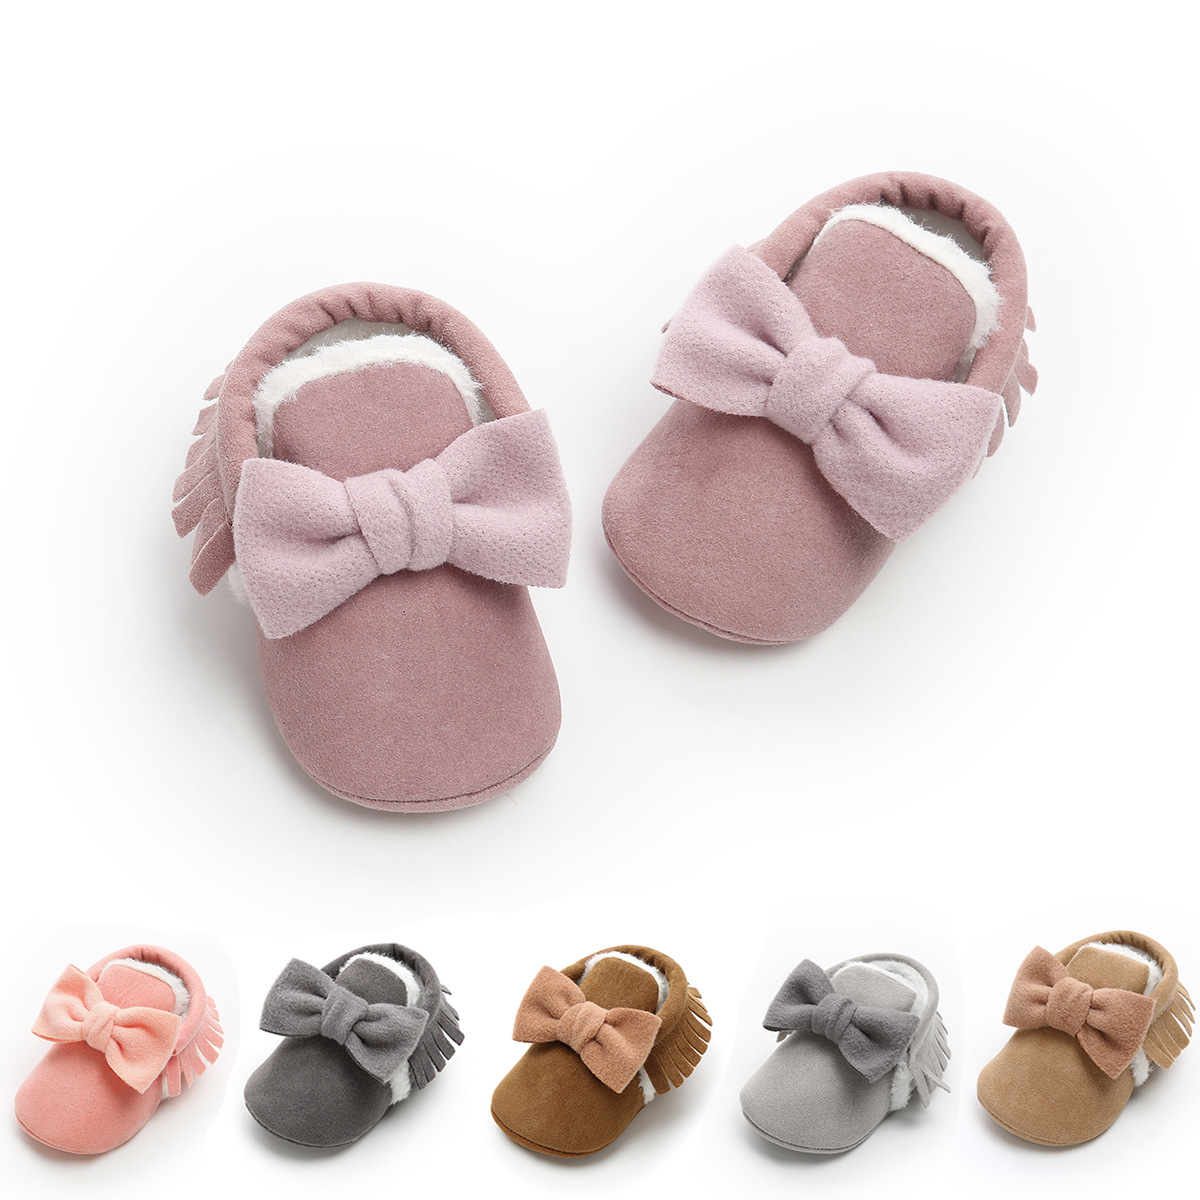 2019 Winter New Baby Girls Shoes Warm Cotton Toddler Shoes  Baby Boots  Infant Fashion Boots Fashion Baby Moccasins